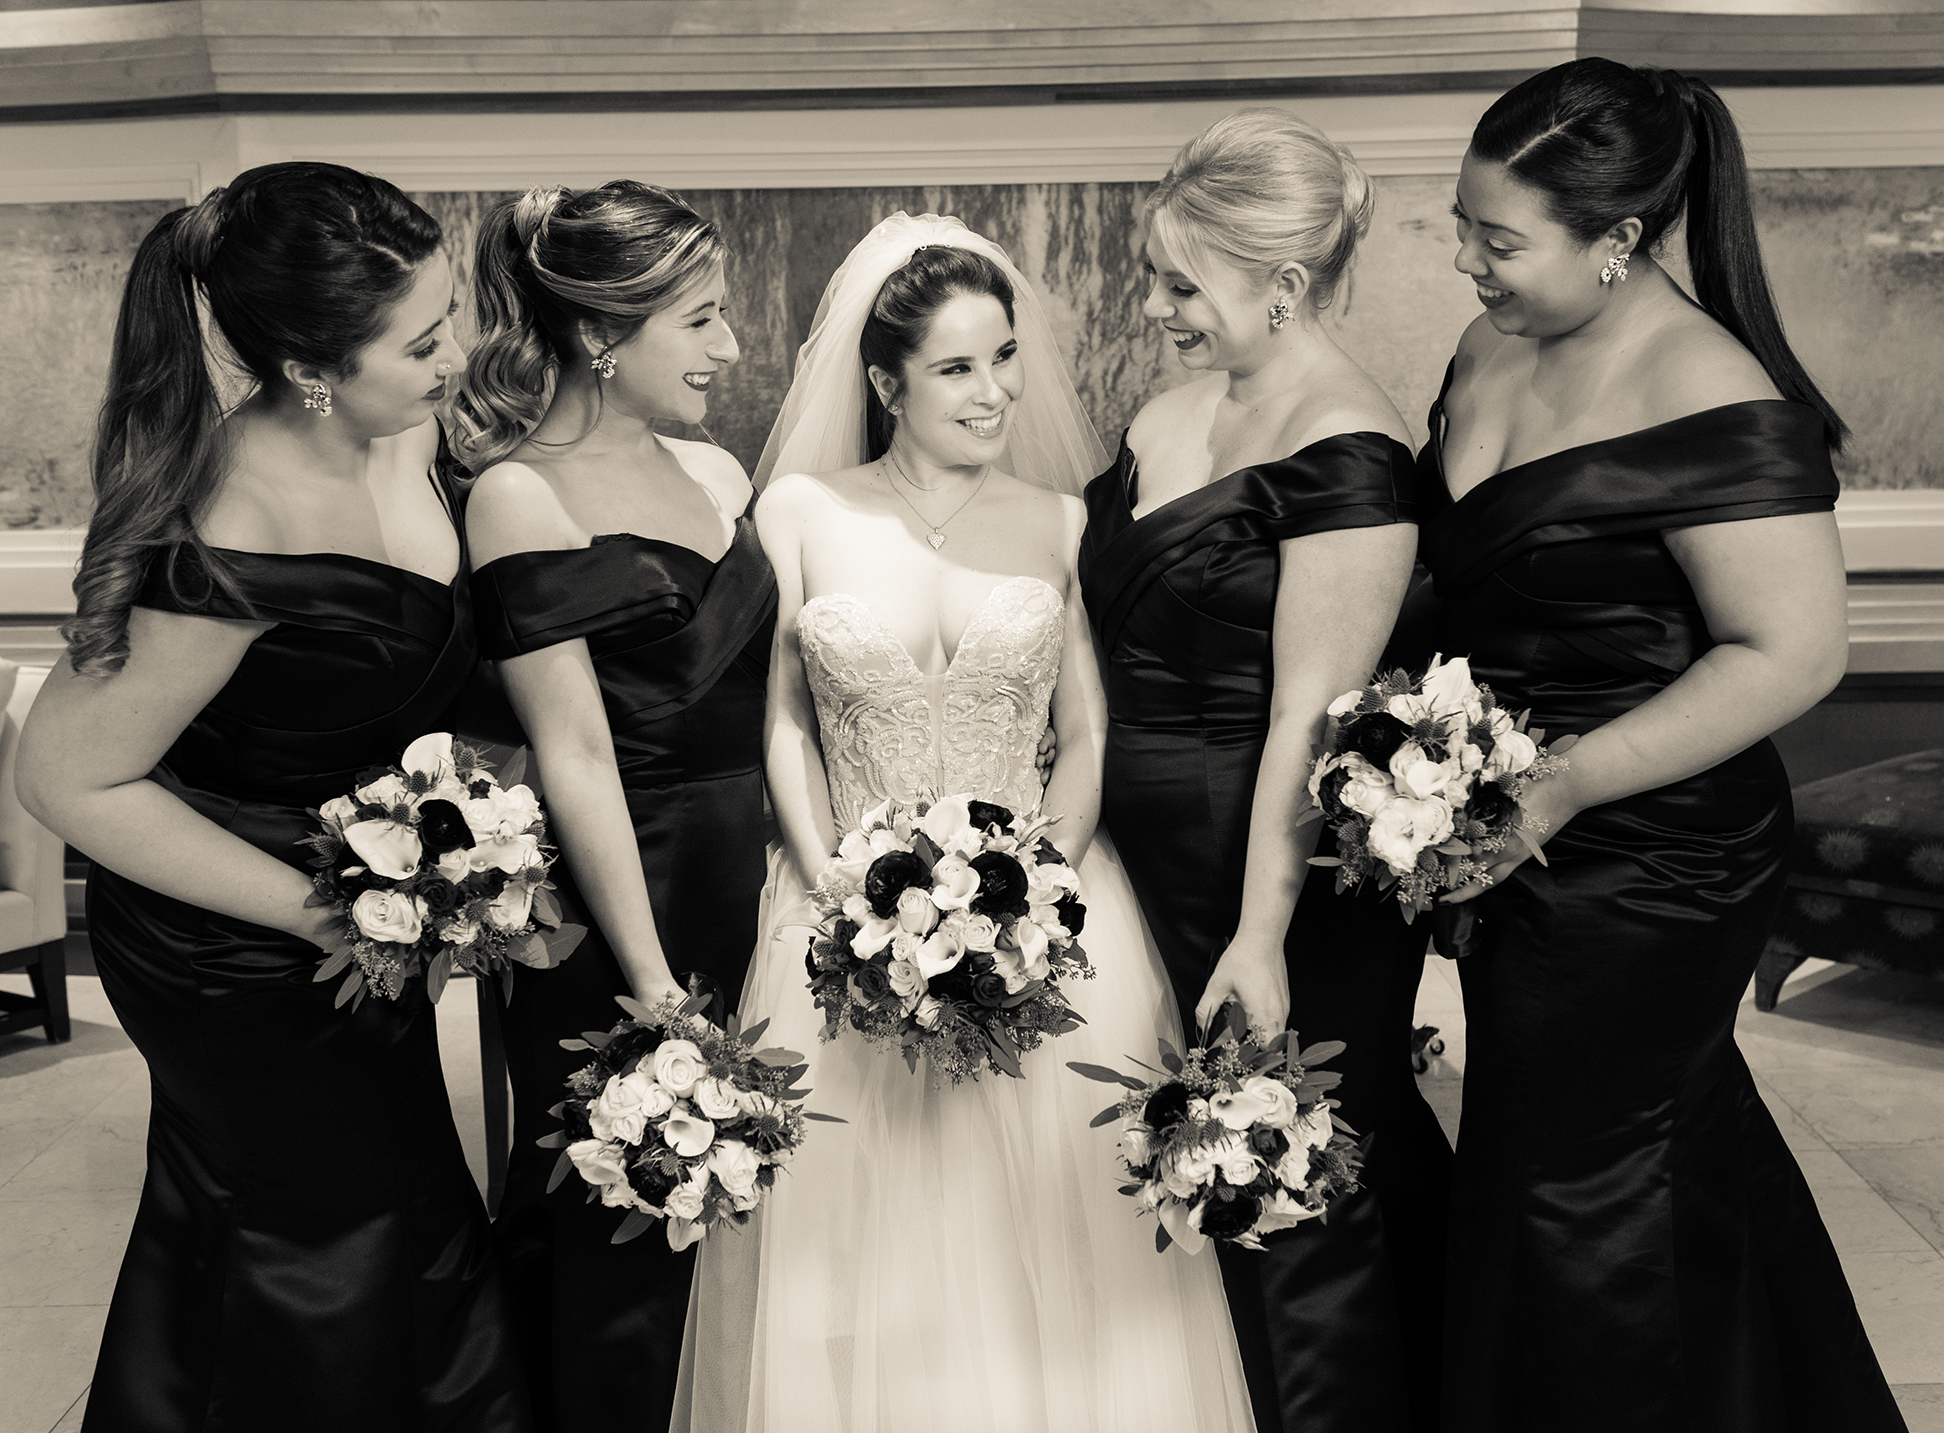 3-say-yes-to-the-dress-wedding-jamie-levine-photography..jpg